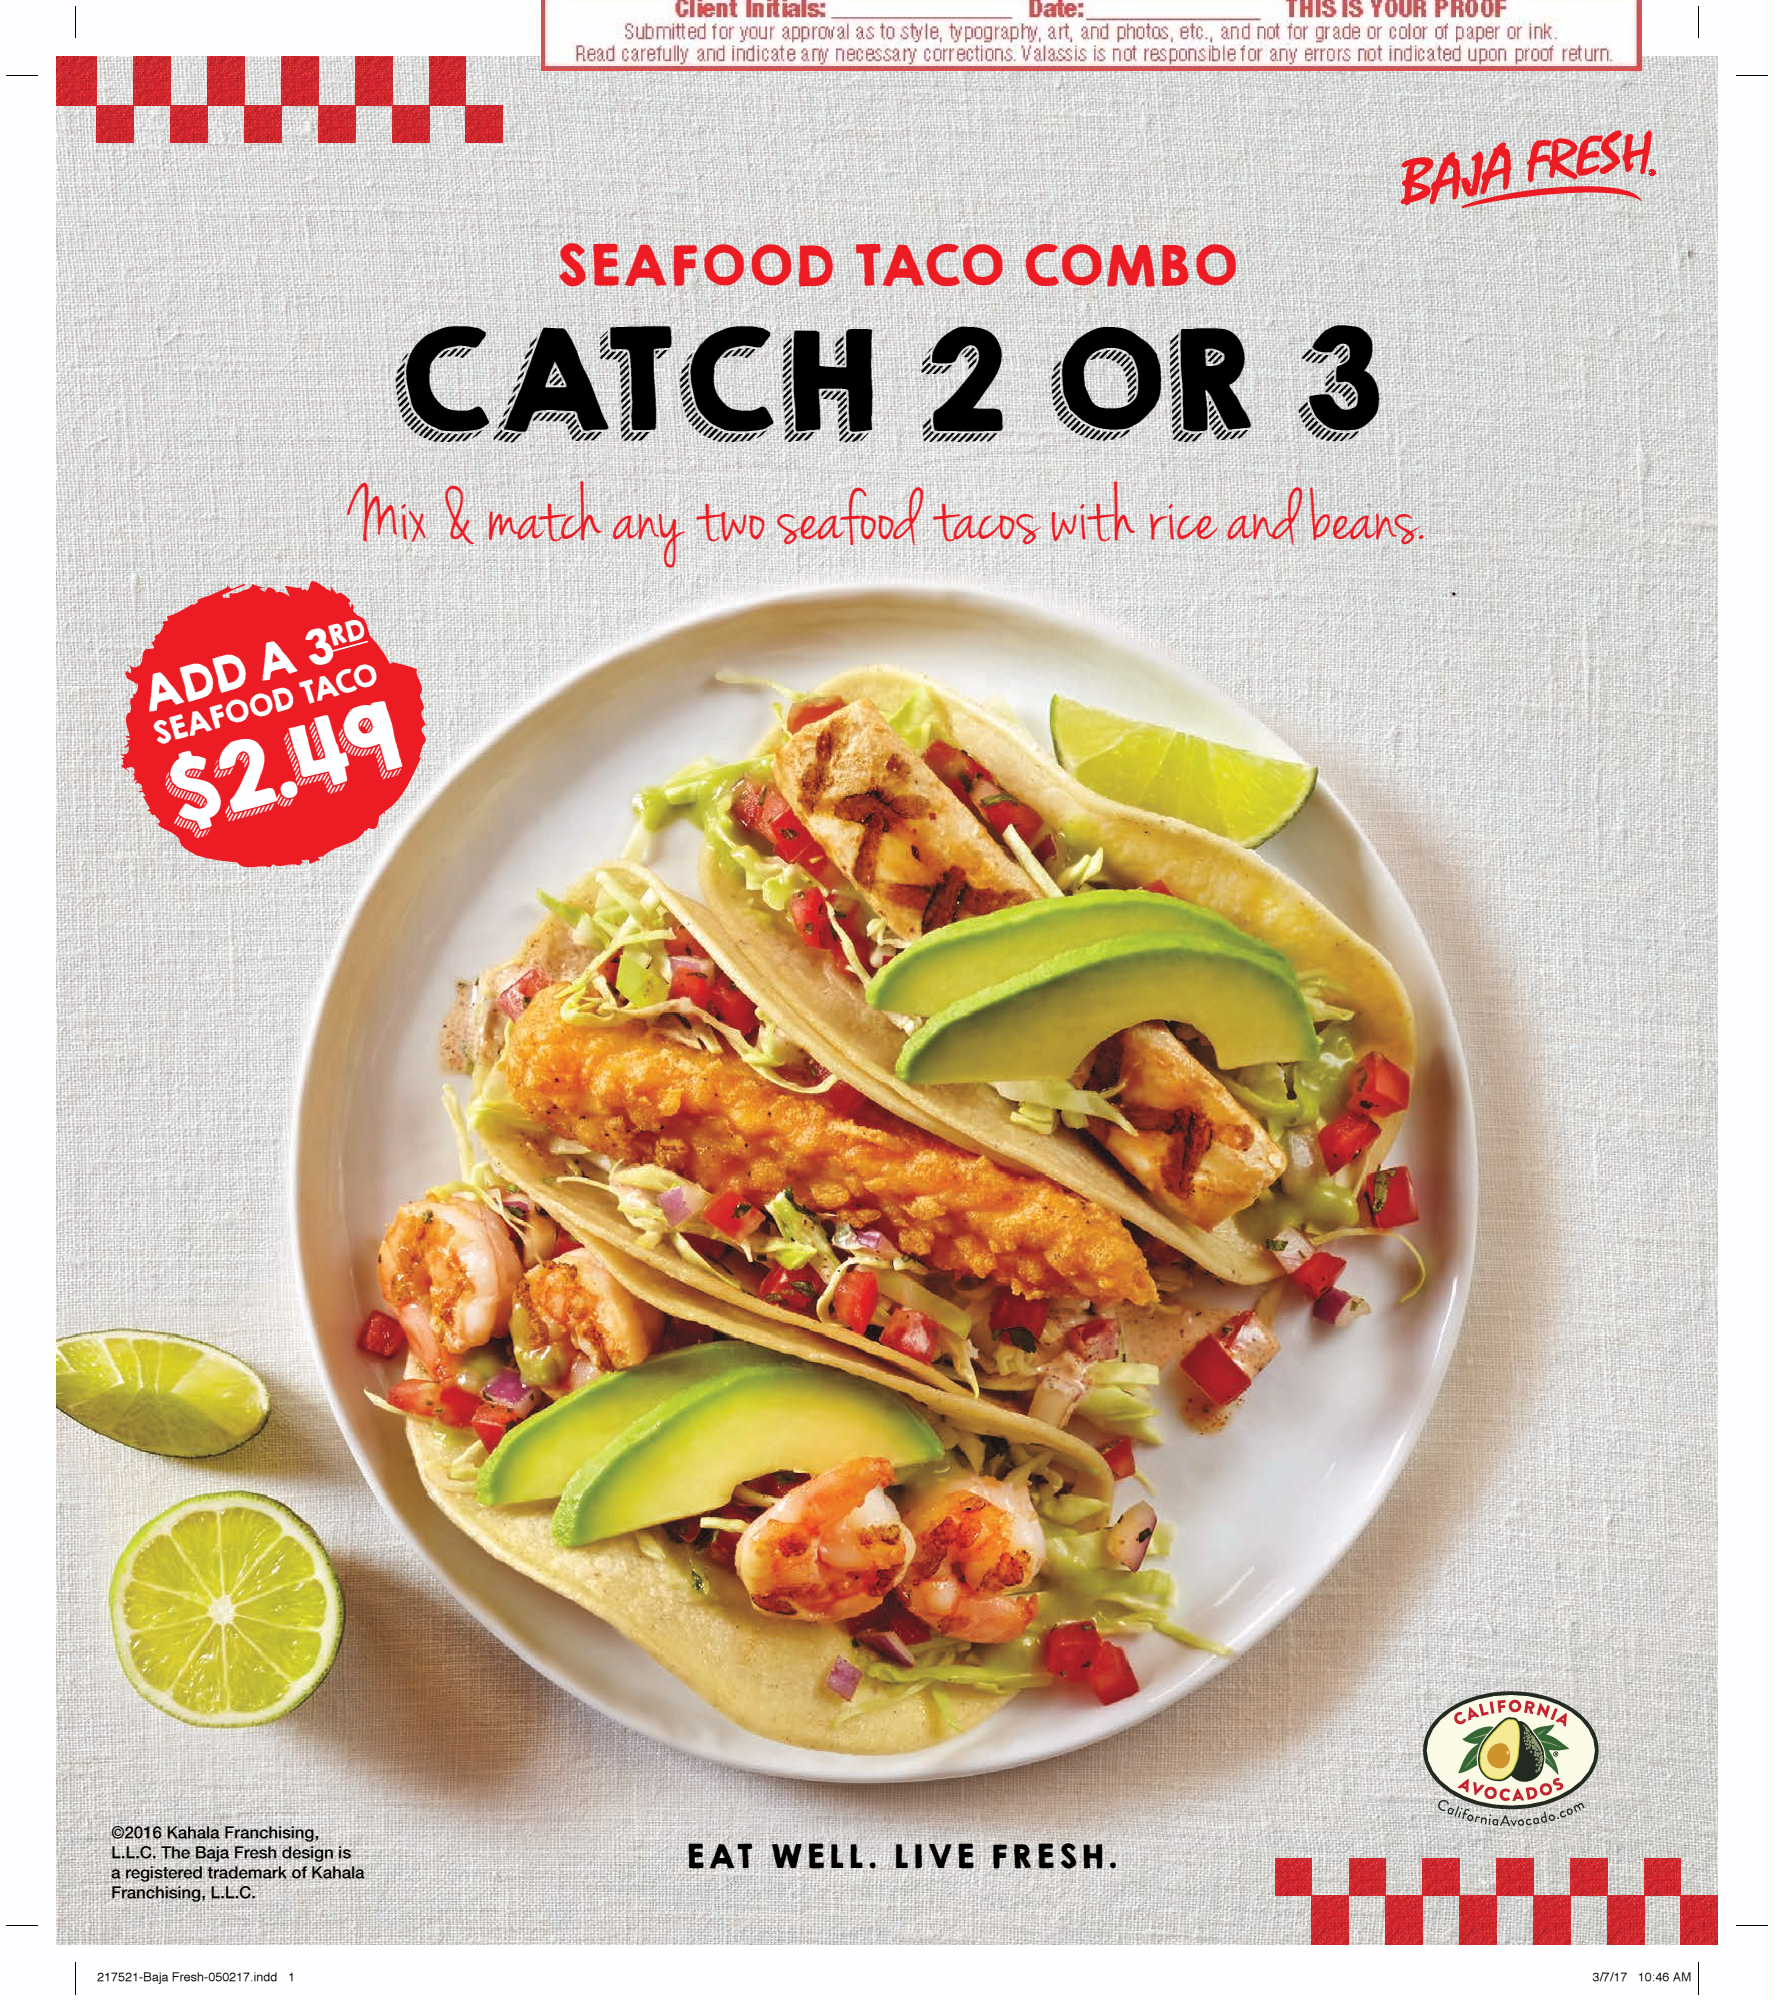 This Free Standing Insert showcases slices of fresh California avocado with three unique Baja Fresh seafood tacos.